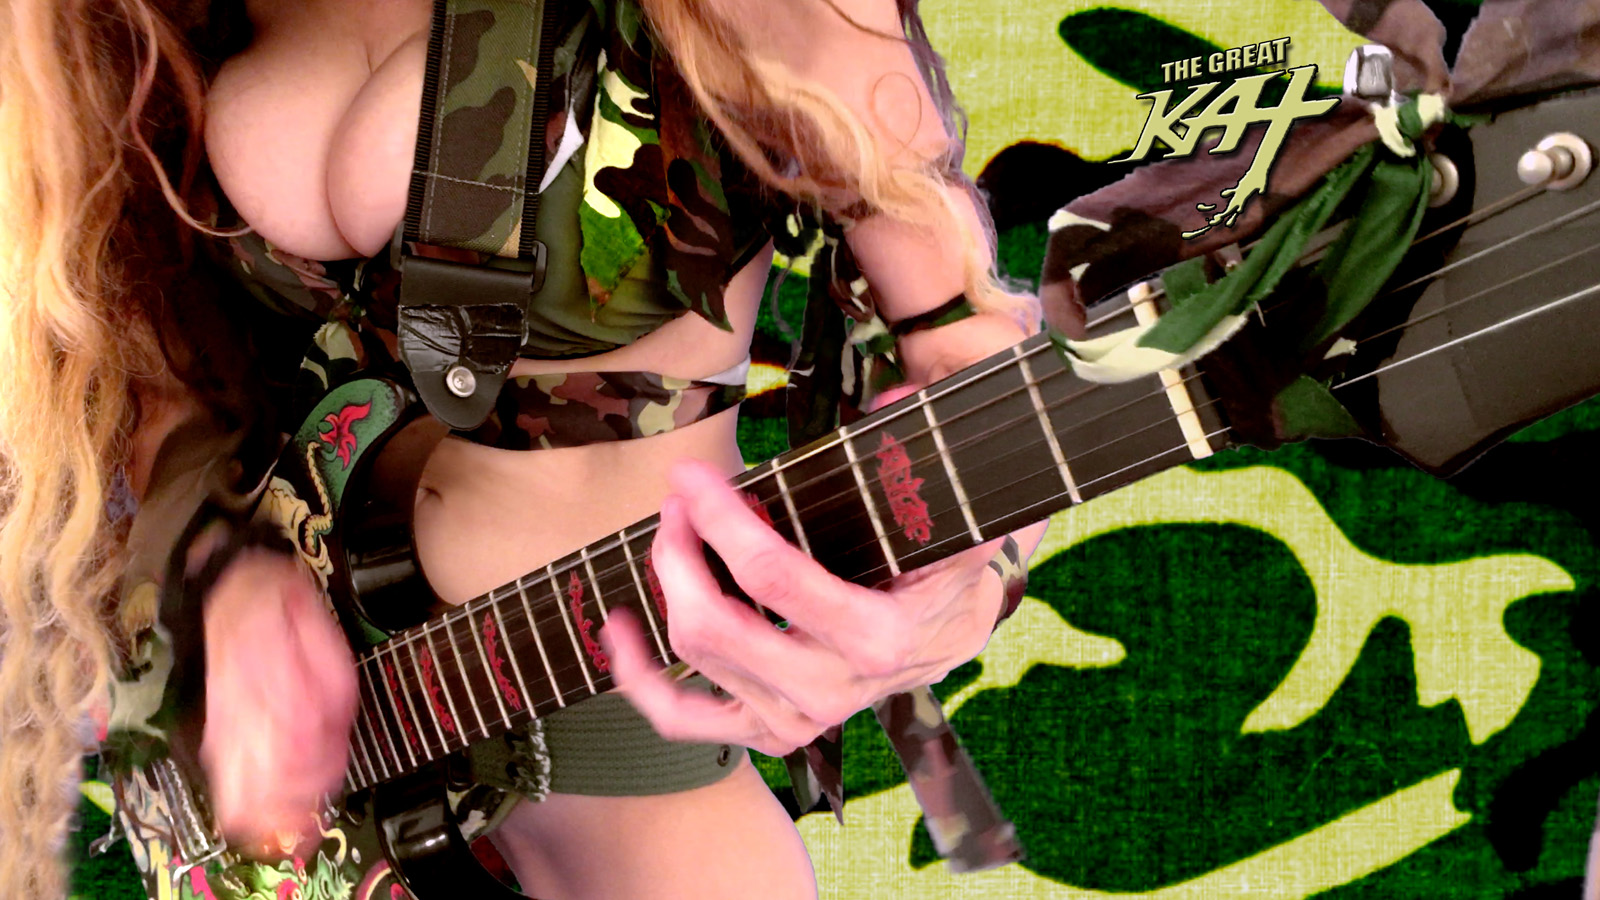 """COMBAT GODDESS!  From The Great Kat's """"TERROR"""" MUSIC VIDEO!"""